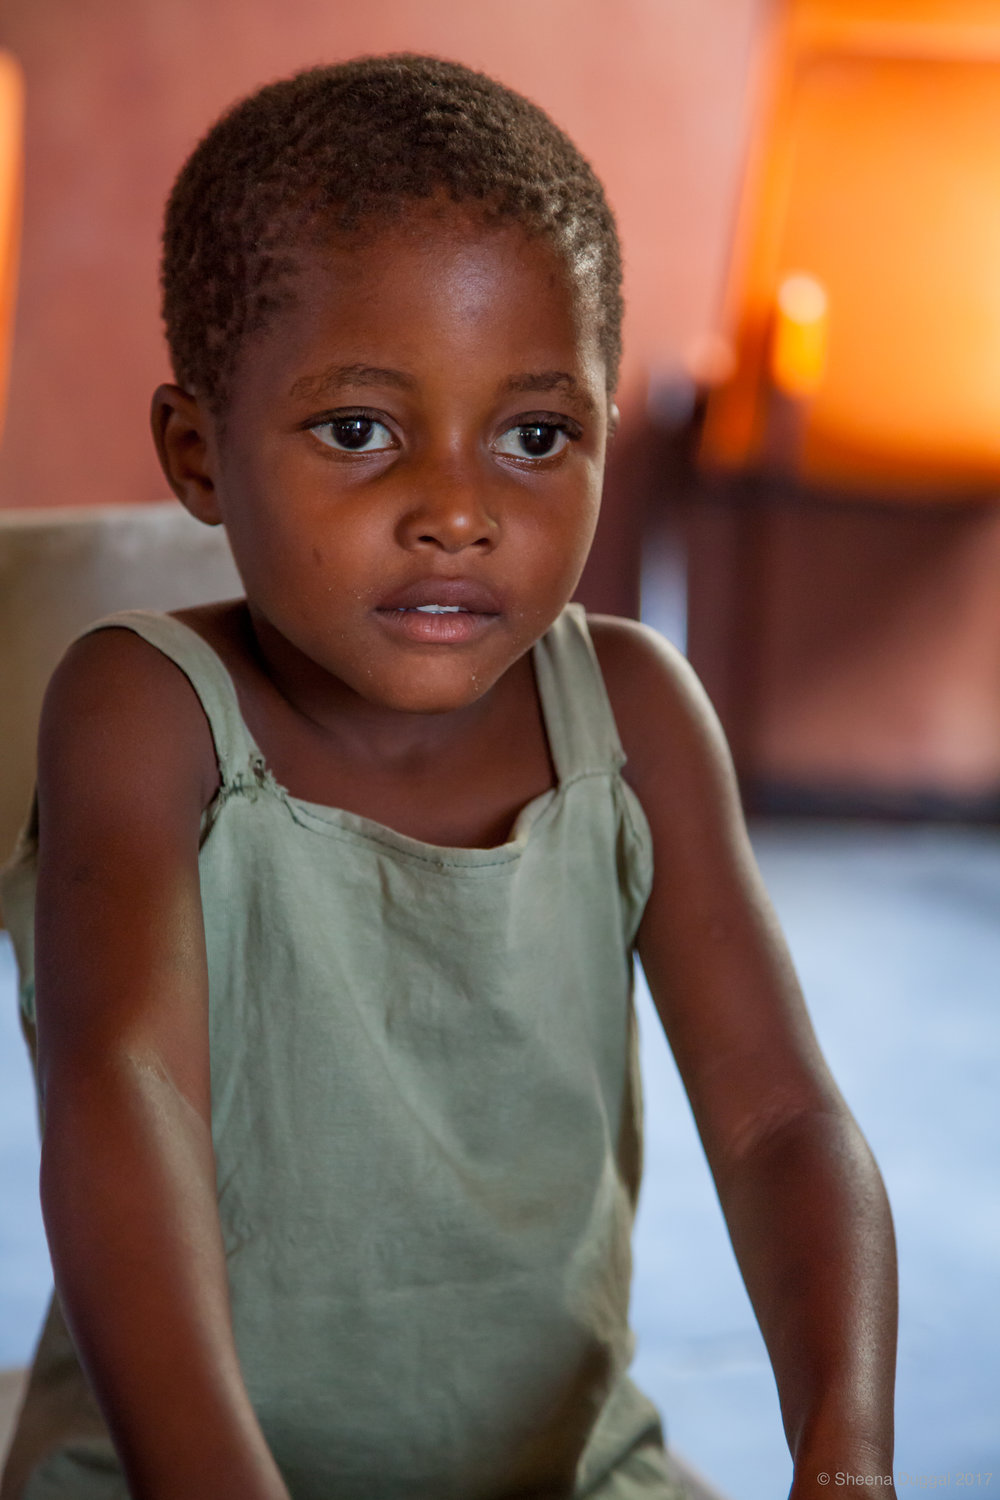 Beautiful orphan girl Zimbabwe 2010